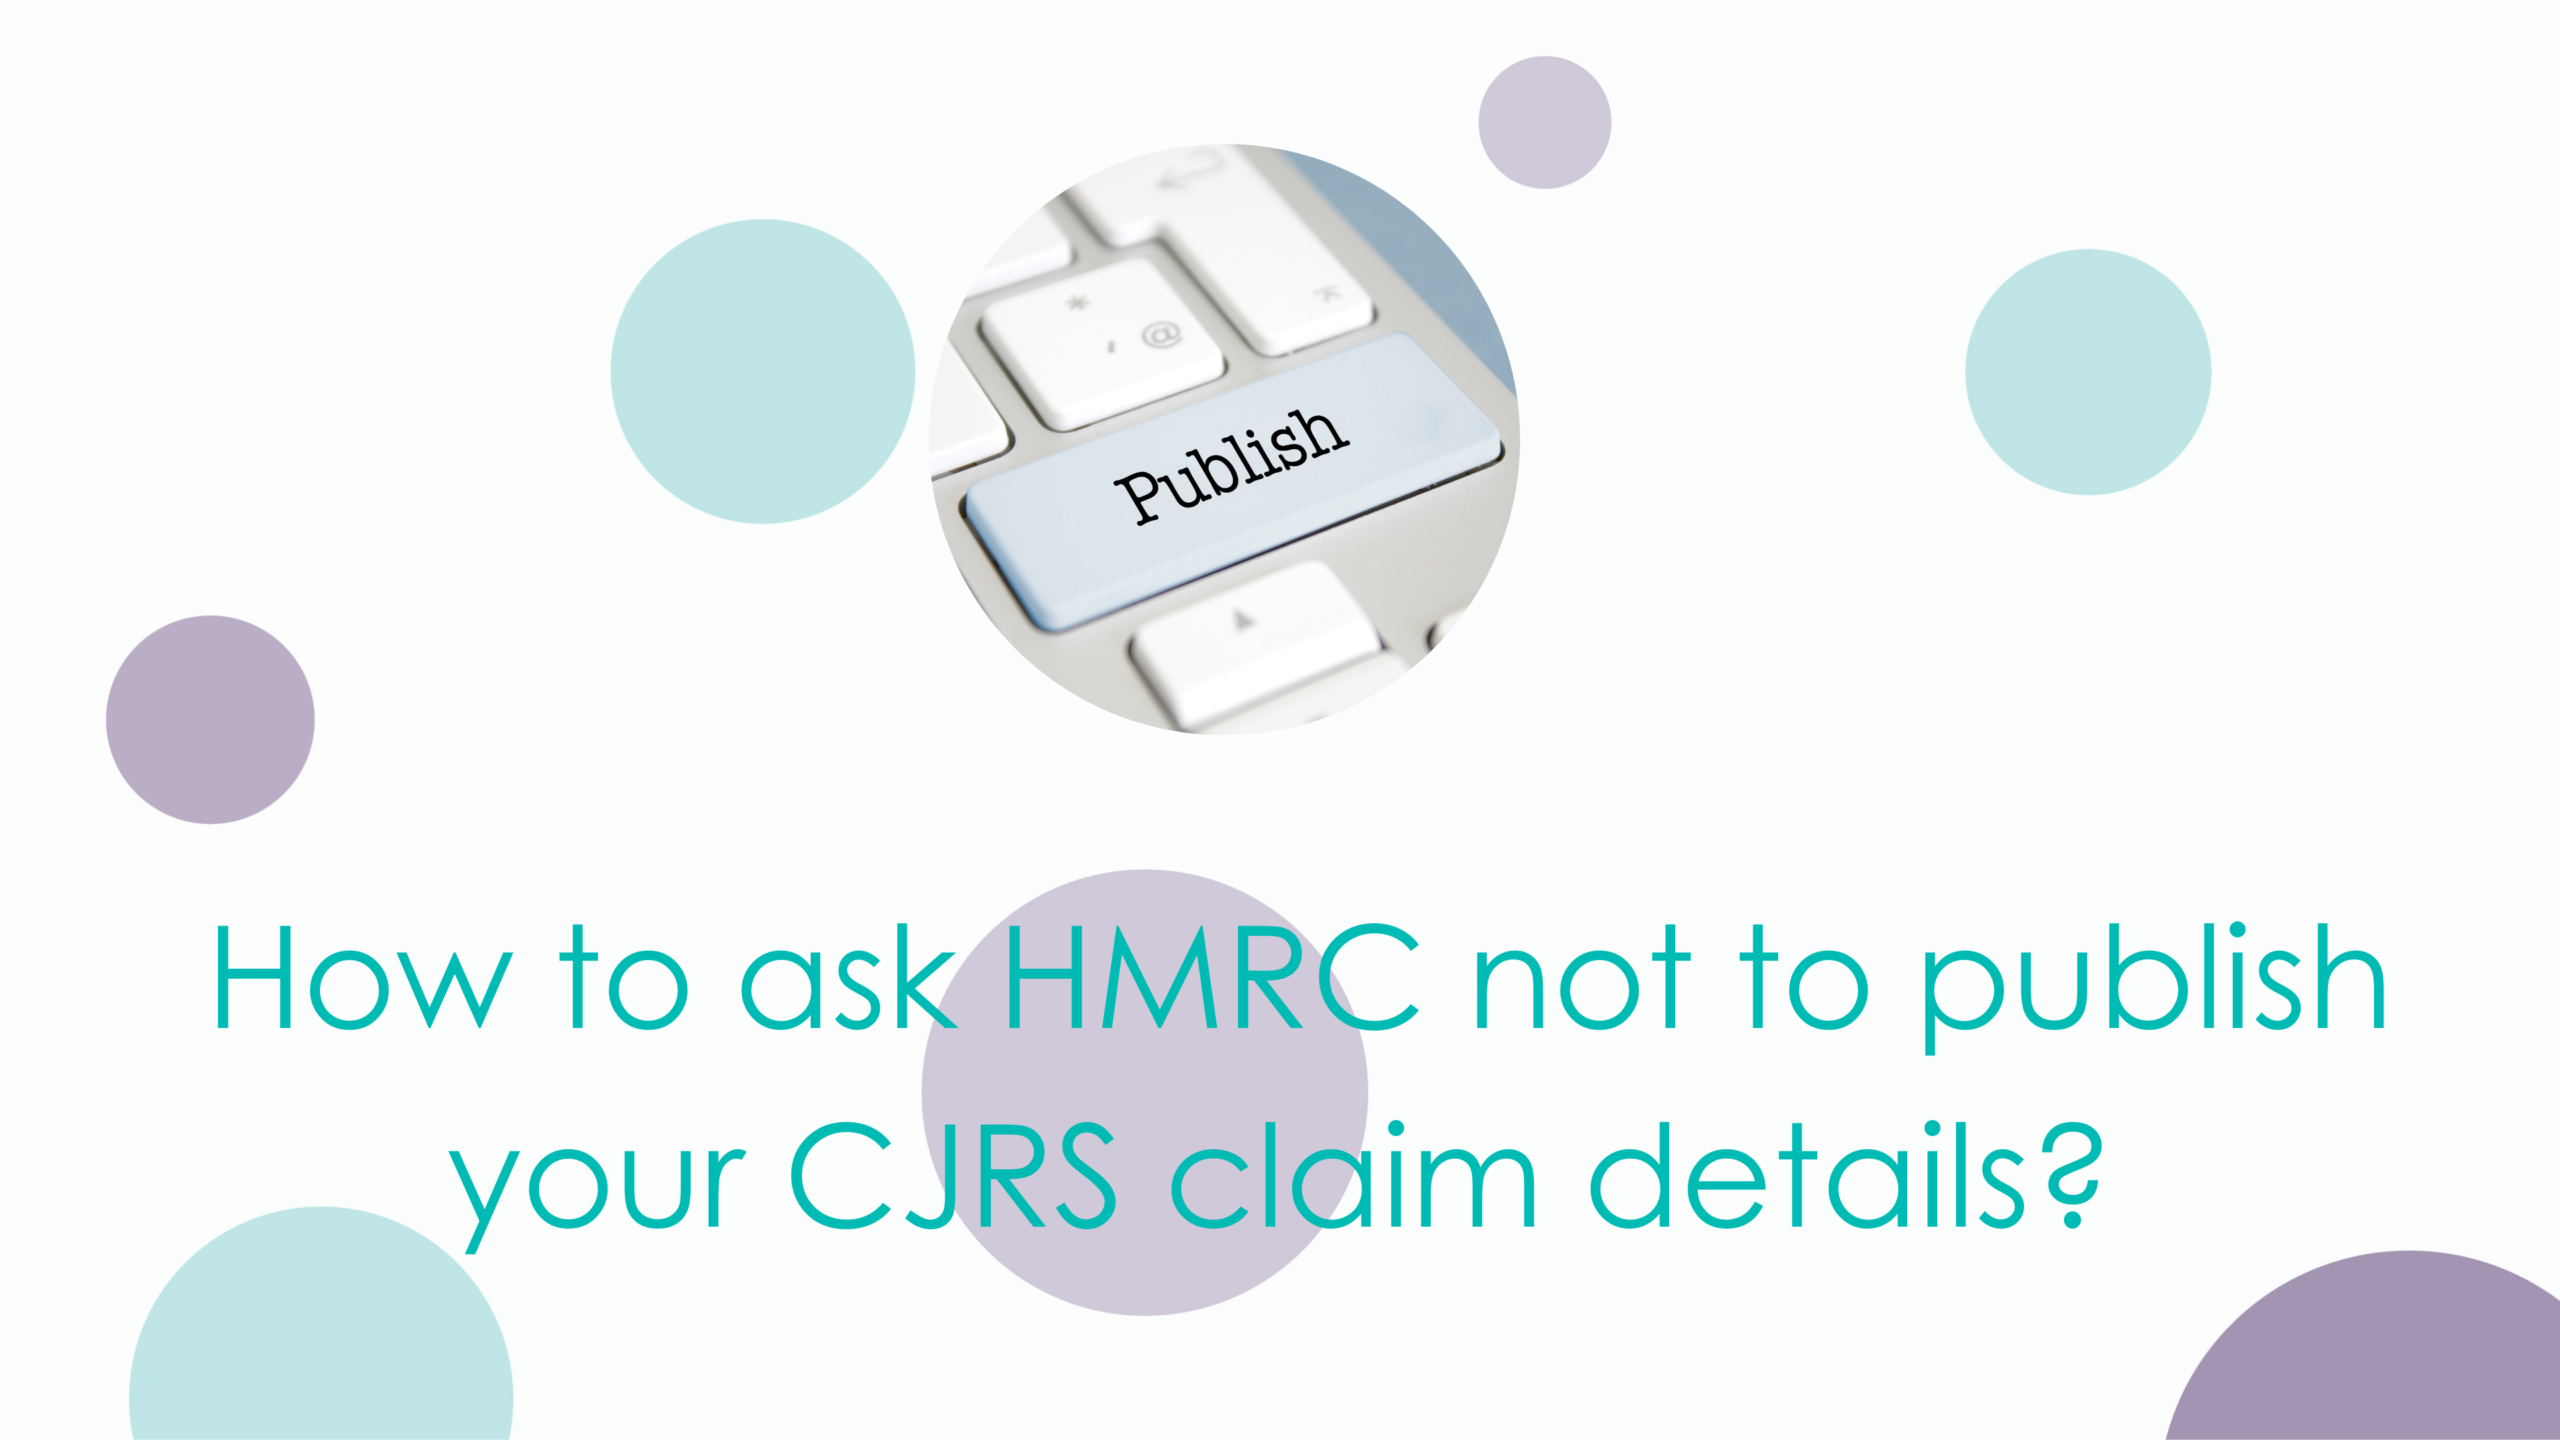 How to ask HMRC not to publish your CJRS claim details?